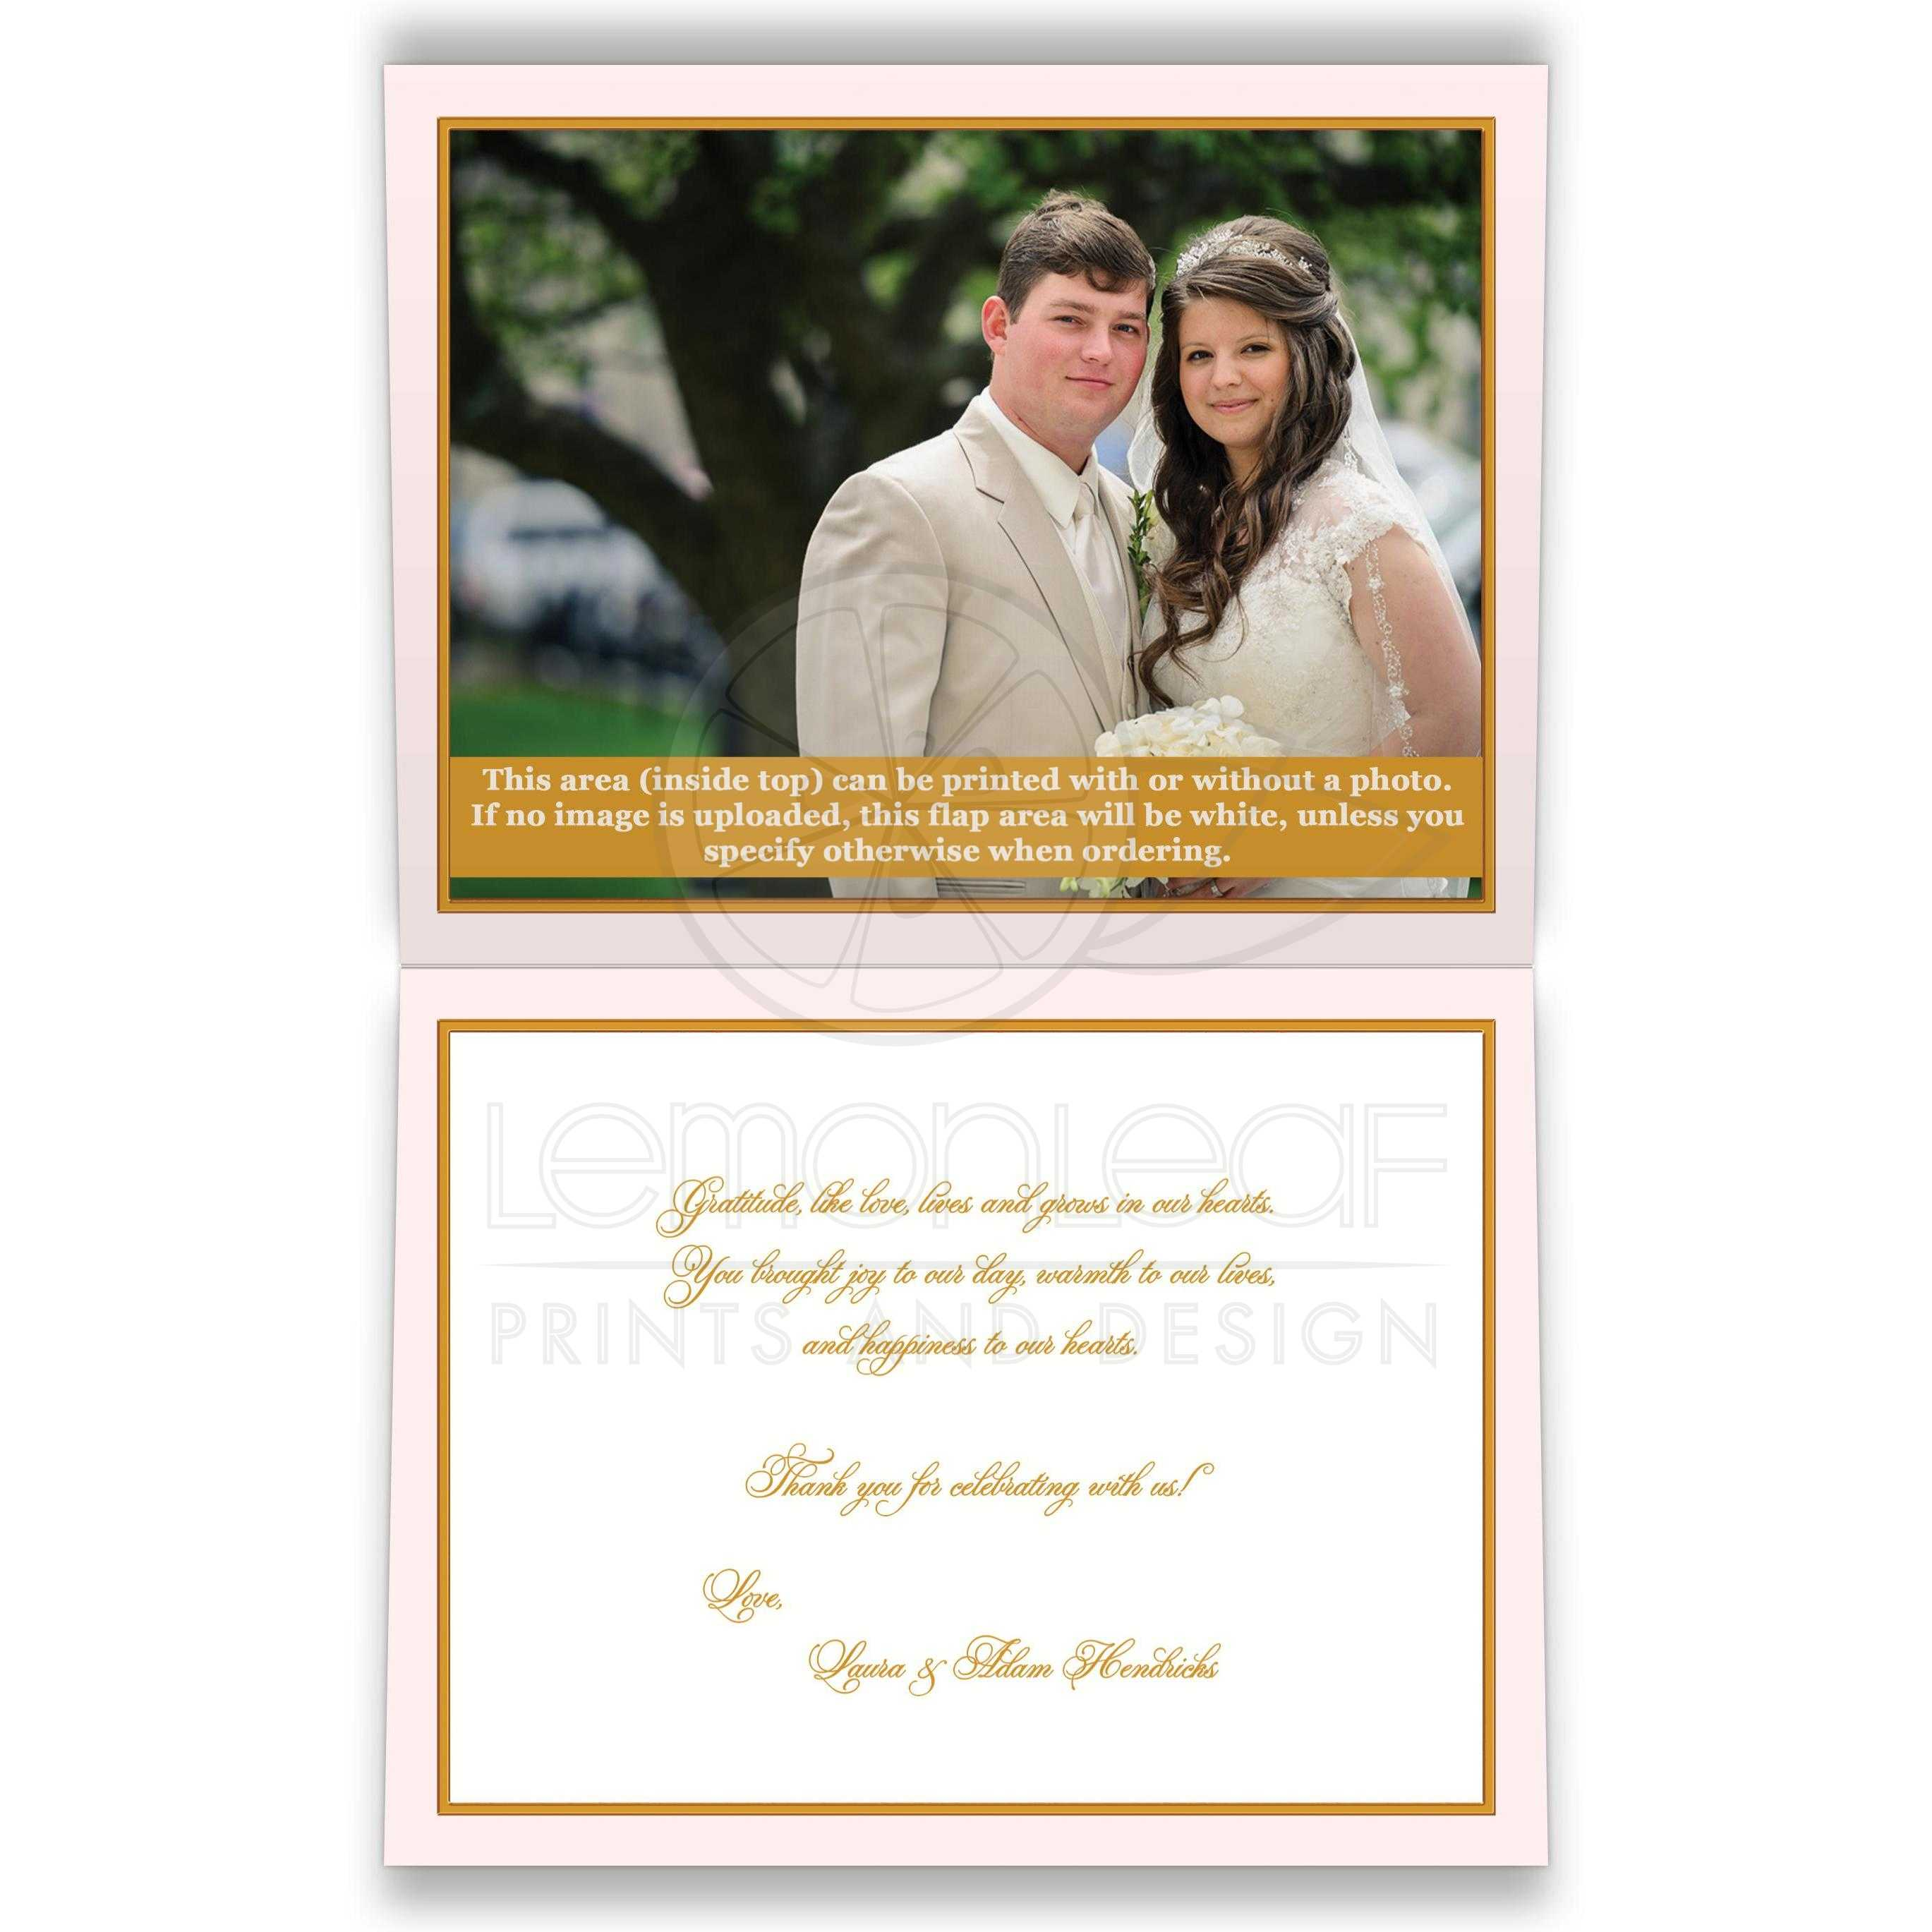 Personalized Blush Pink Ivory And Gold Vintage Fl Wedding Thank You Card With Monogram